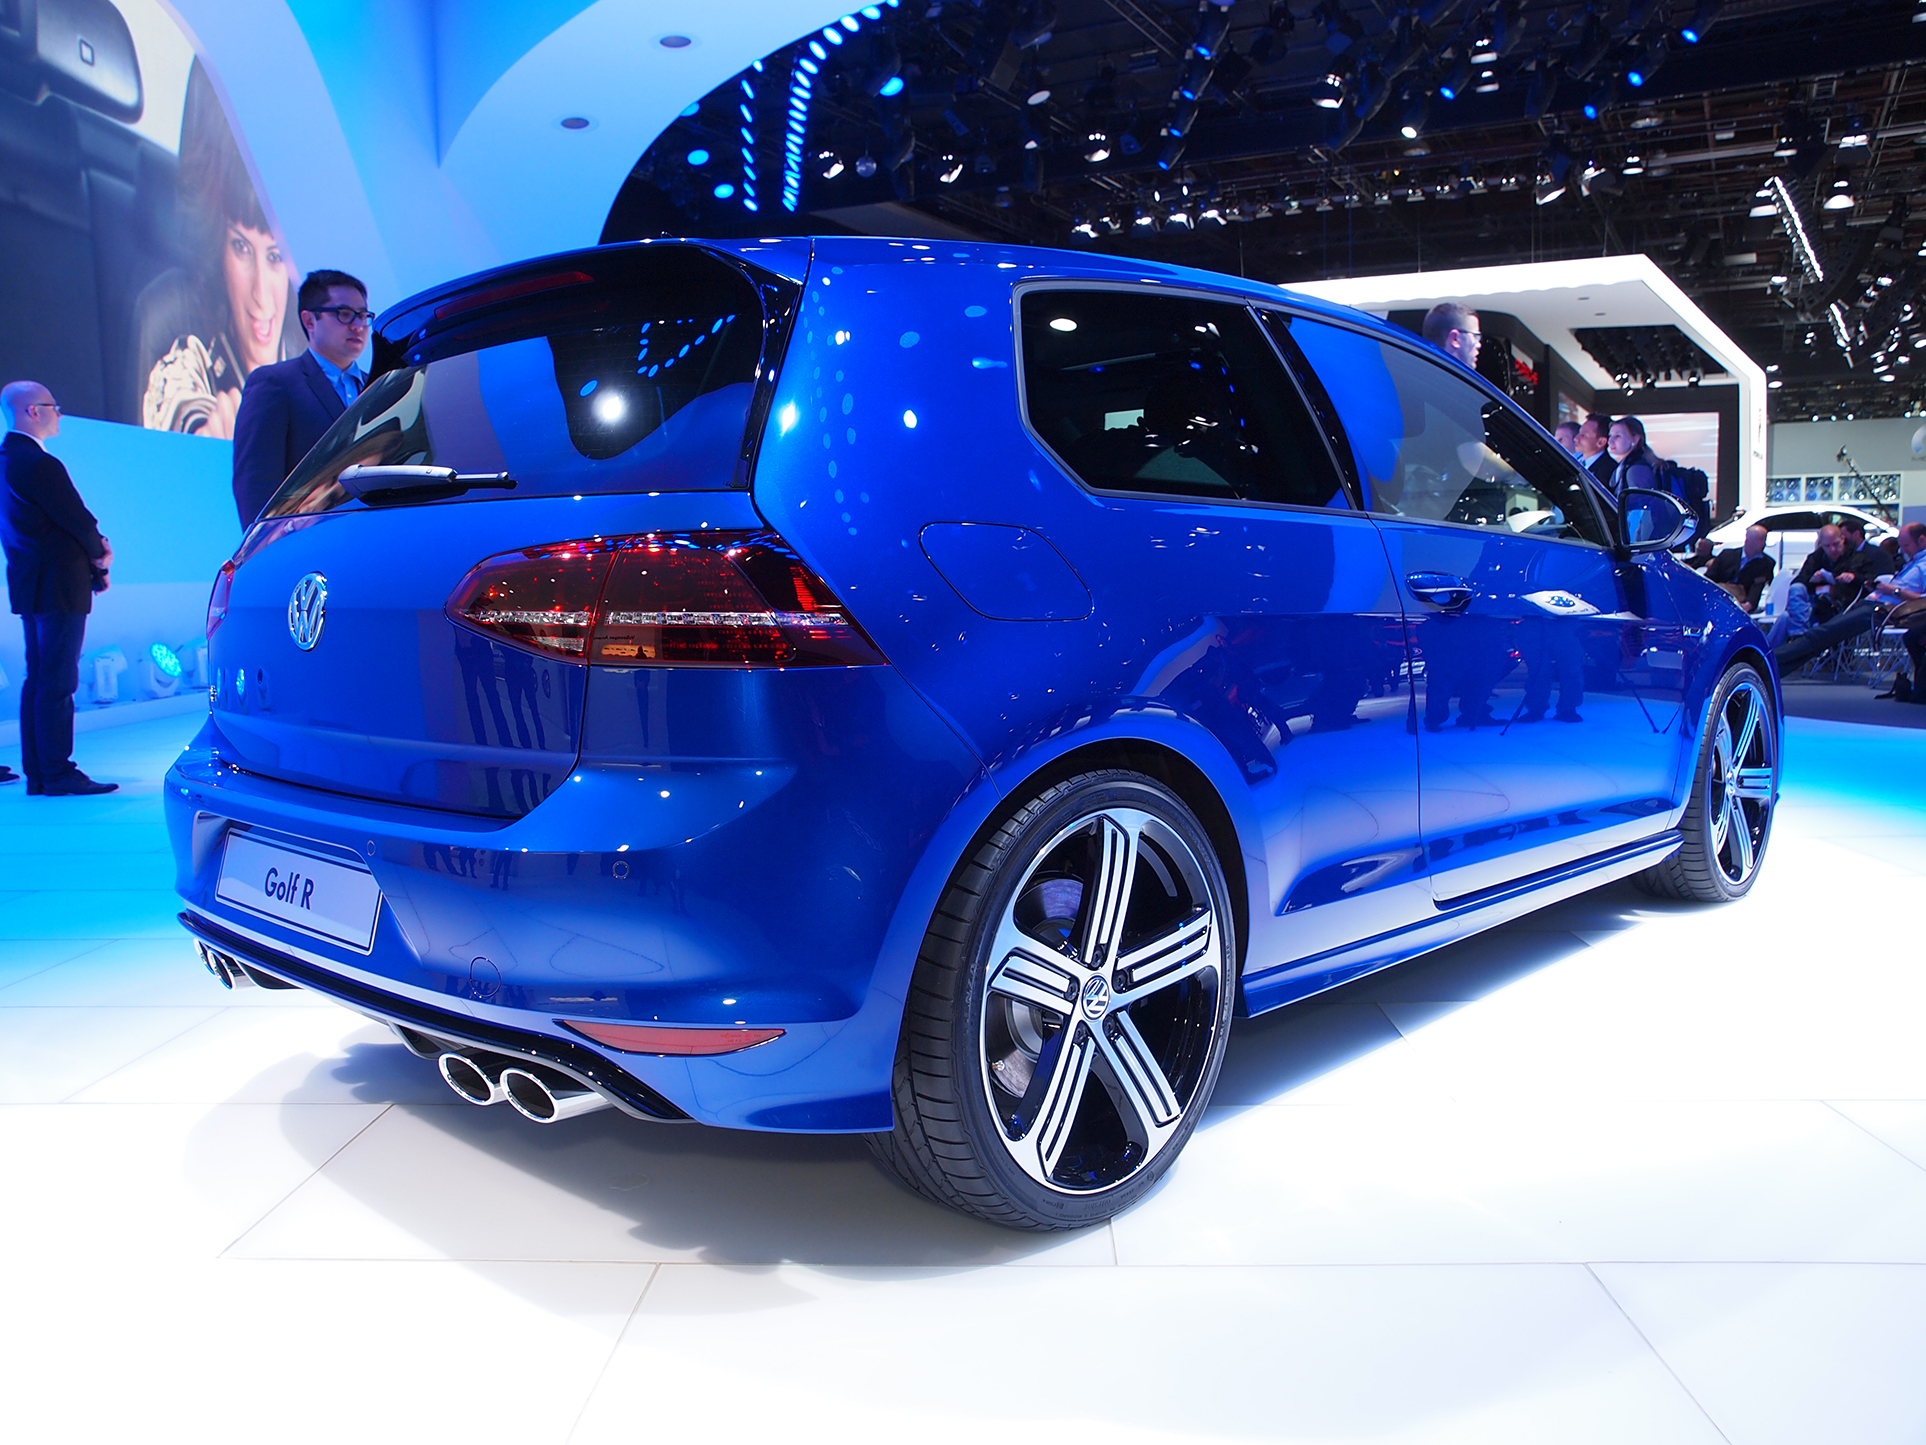 2015 Volkswagen Golf R Is A Hot Hatch In Detroit Live